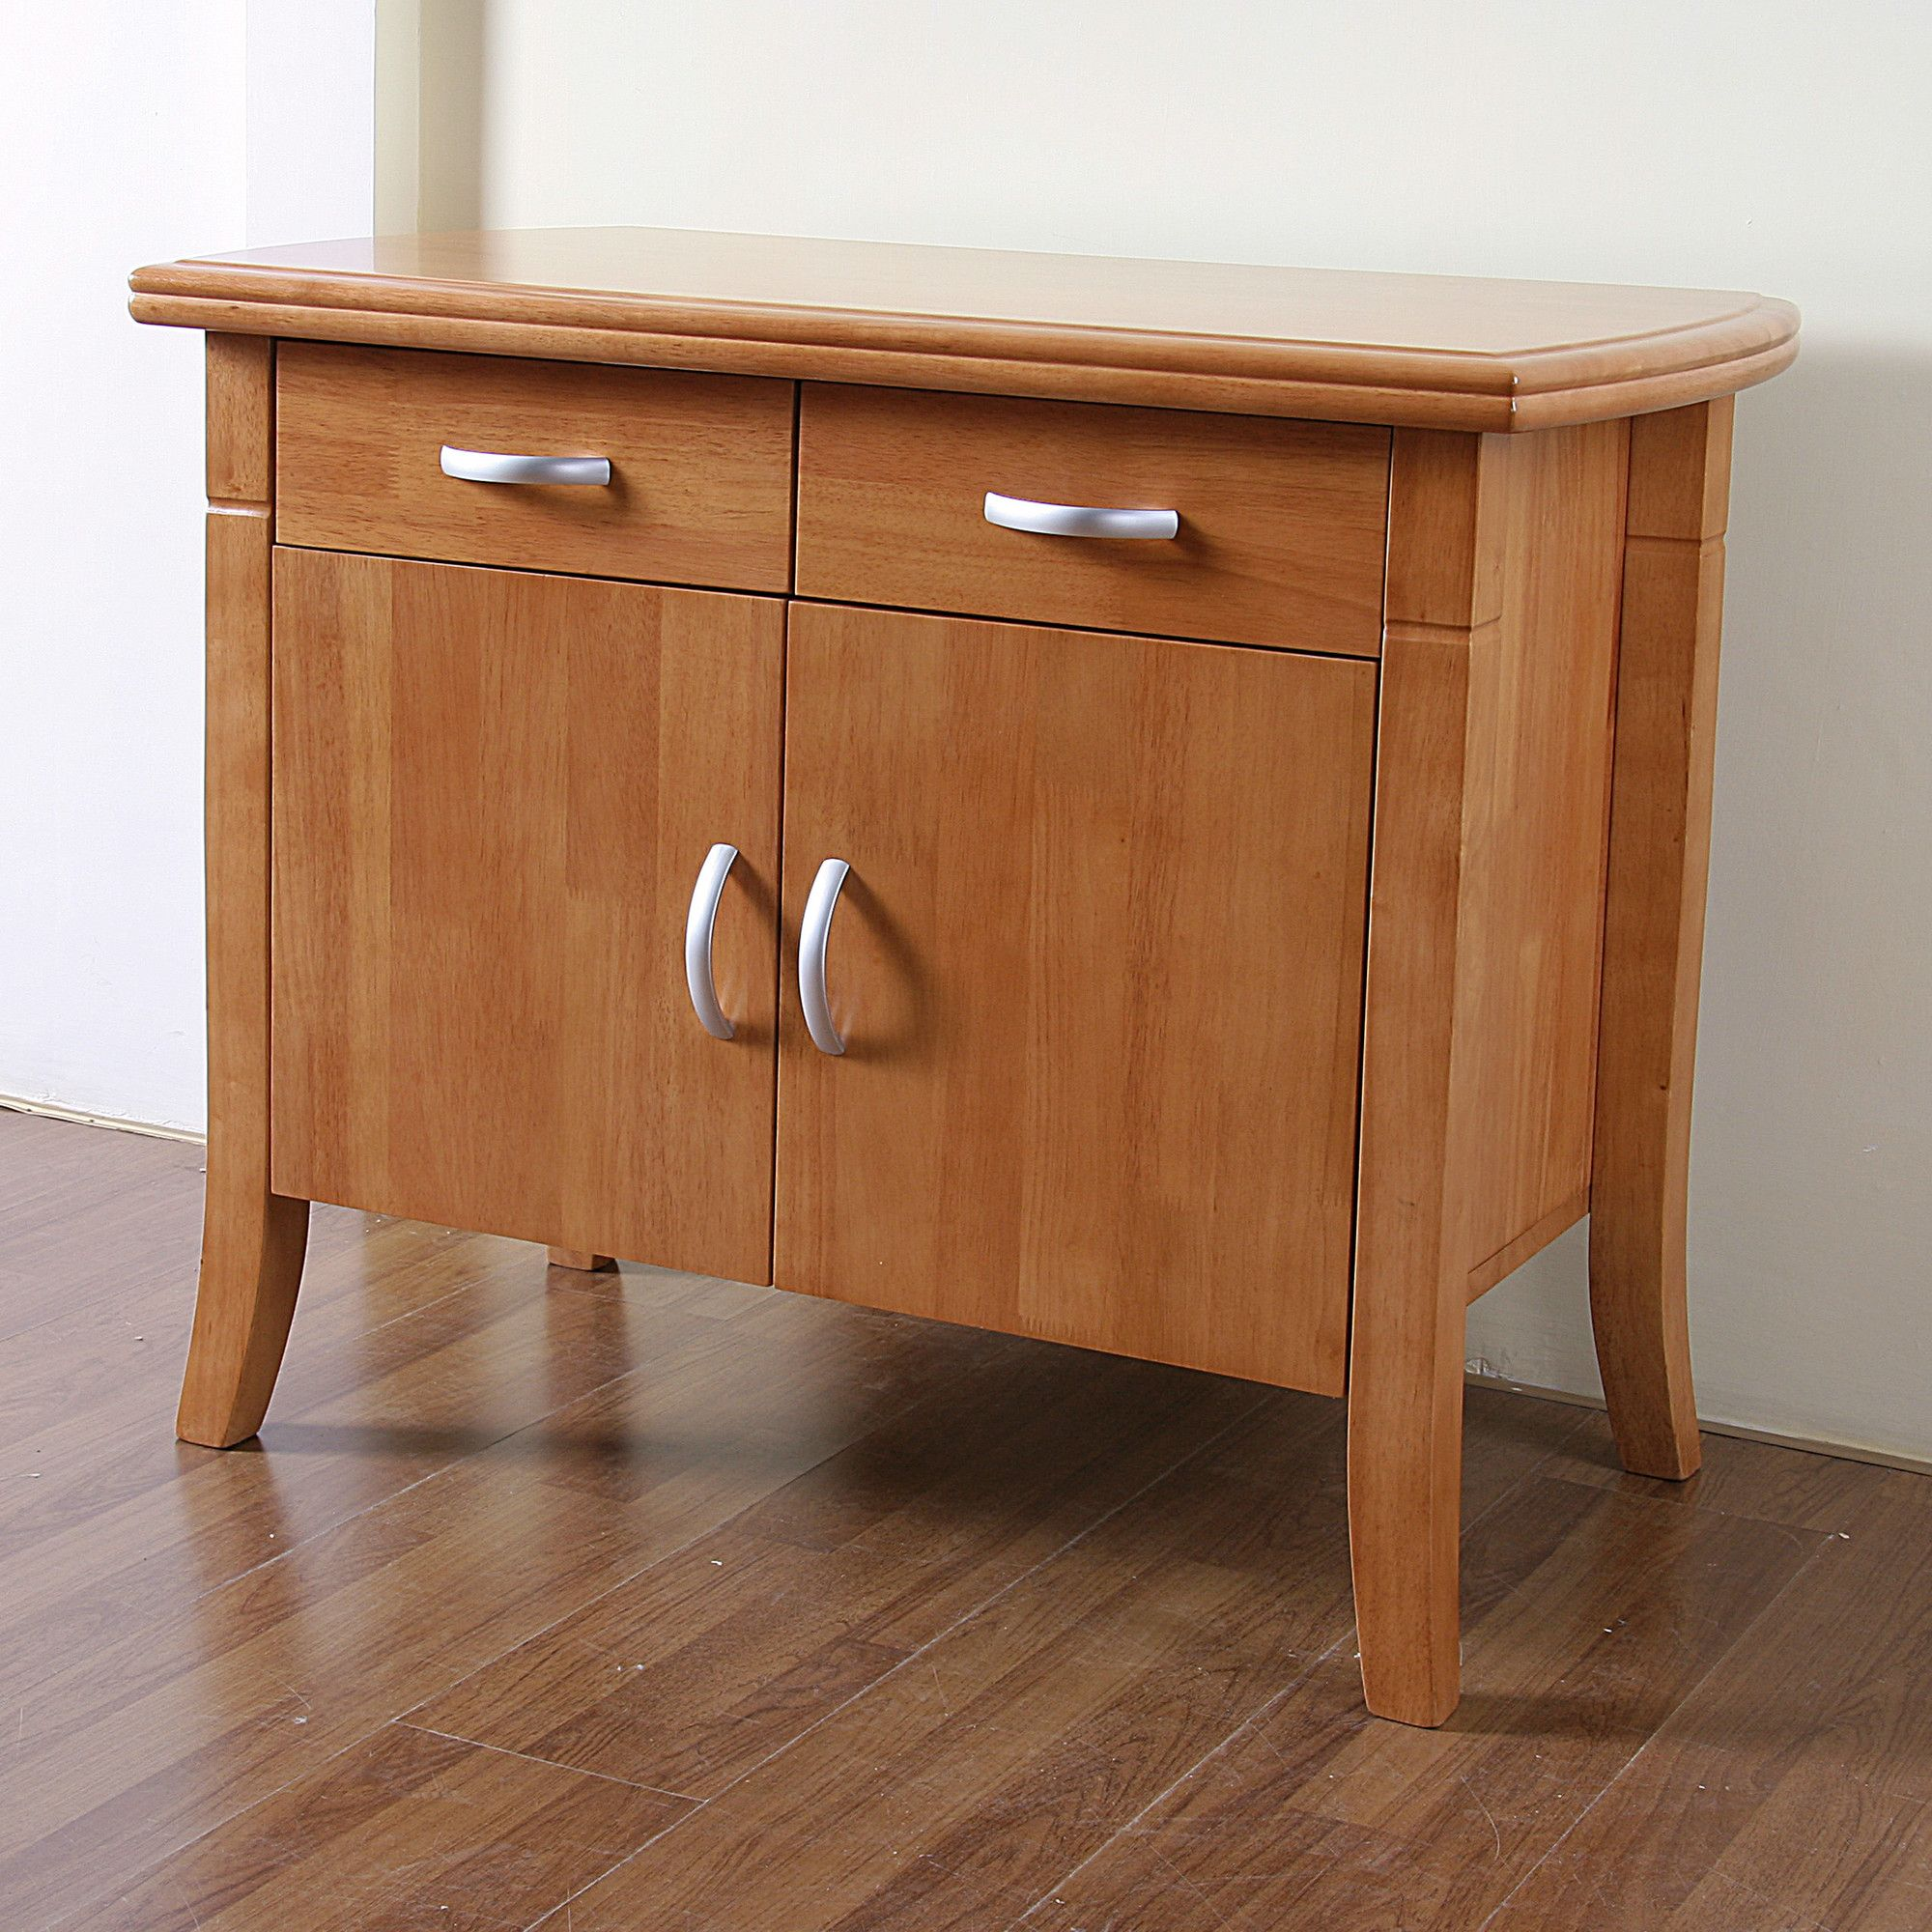 G&P Furniture Windsor House Sideboard - Maple at Tesco Direct